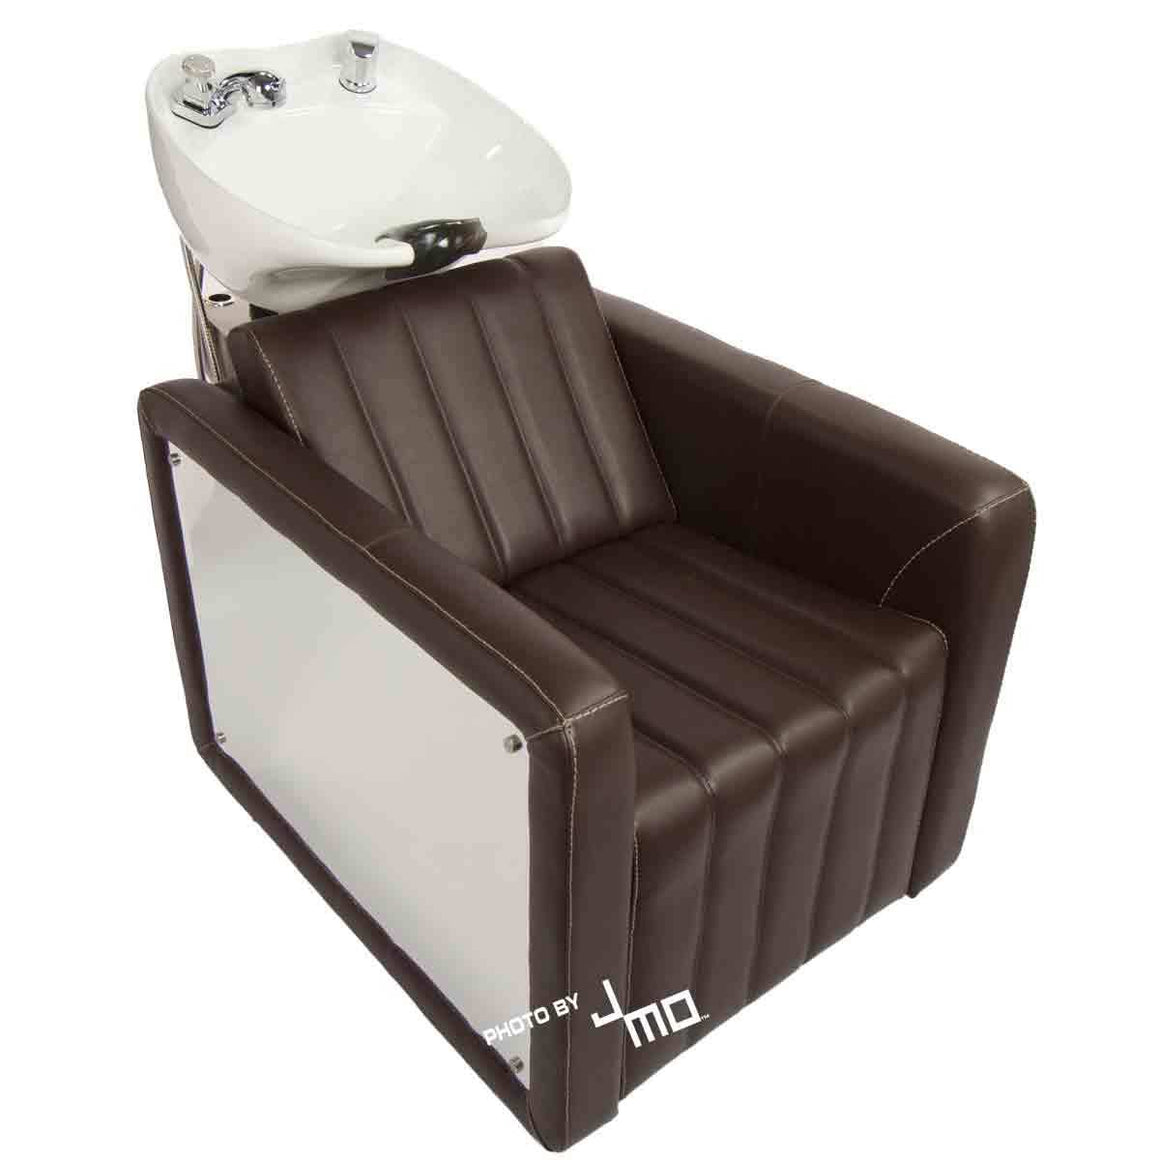 Shampoo backwash hair washing unit with cocoa vinyl, reflective chrome arms, and a white ceramic bowl. Built to be both appealing to the eye and sturdy, this shampoo chair is sure to meet the needs of any salon stylist.